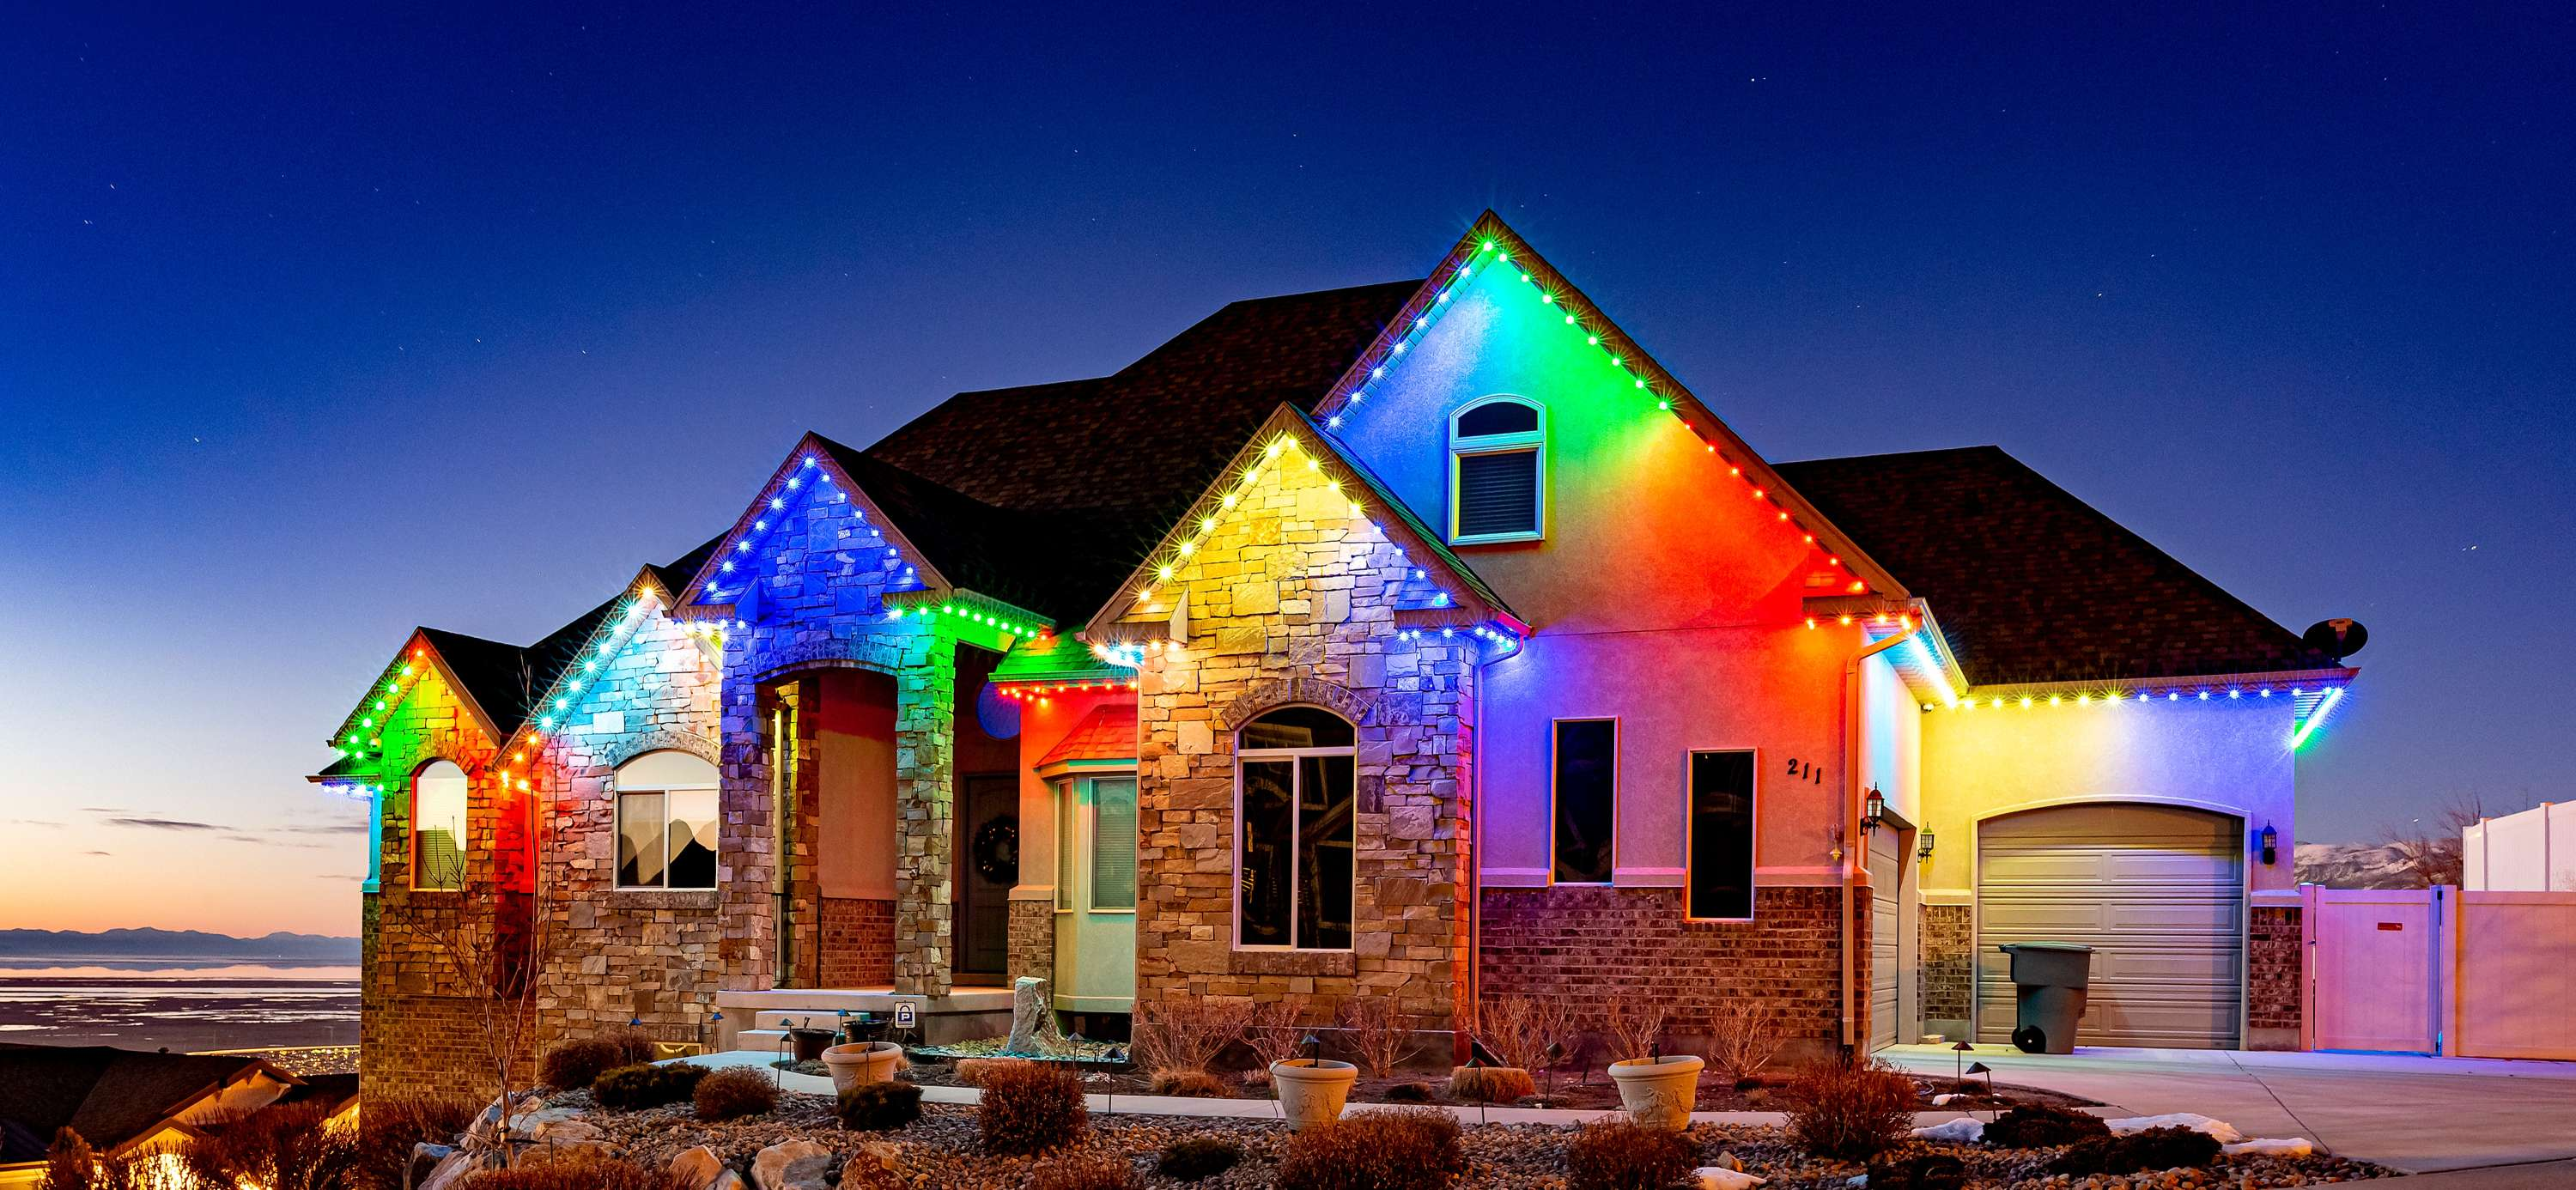 a large home with trimlight red and green lights along the trim